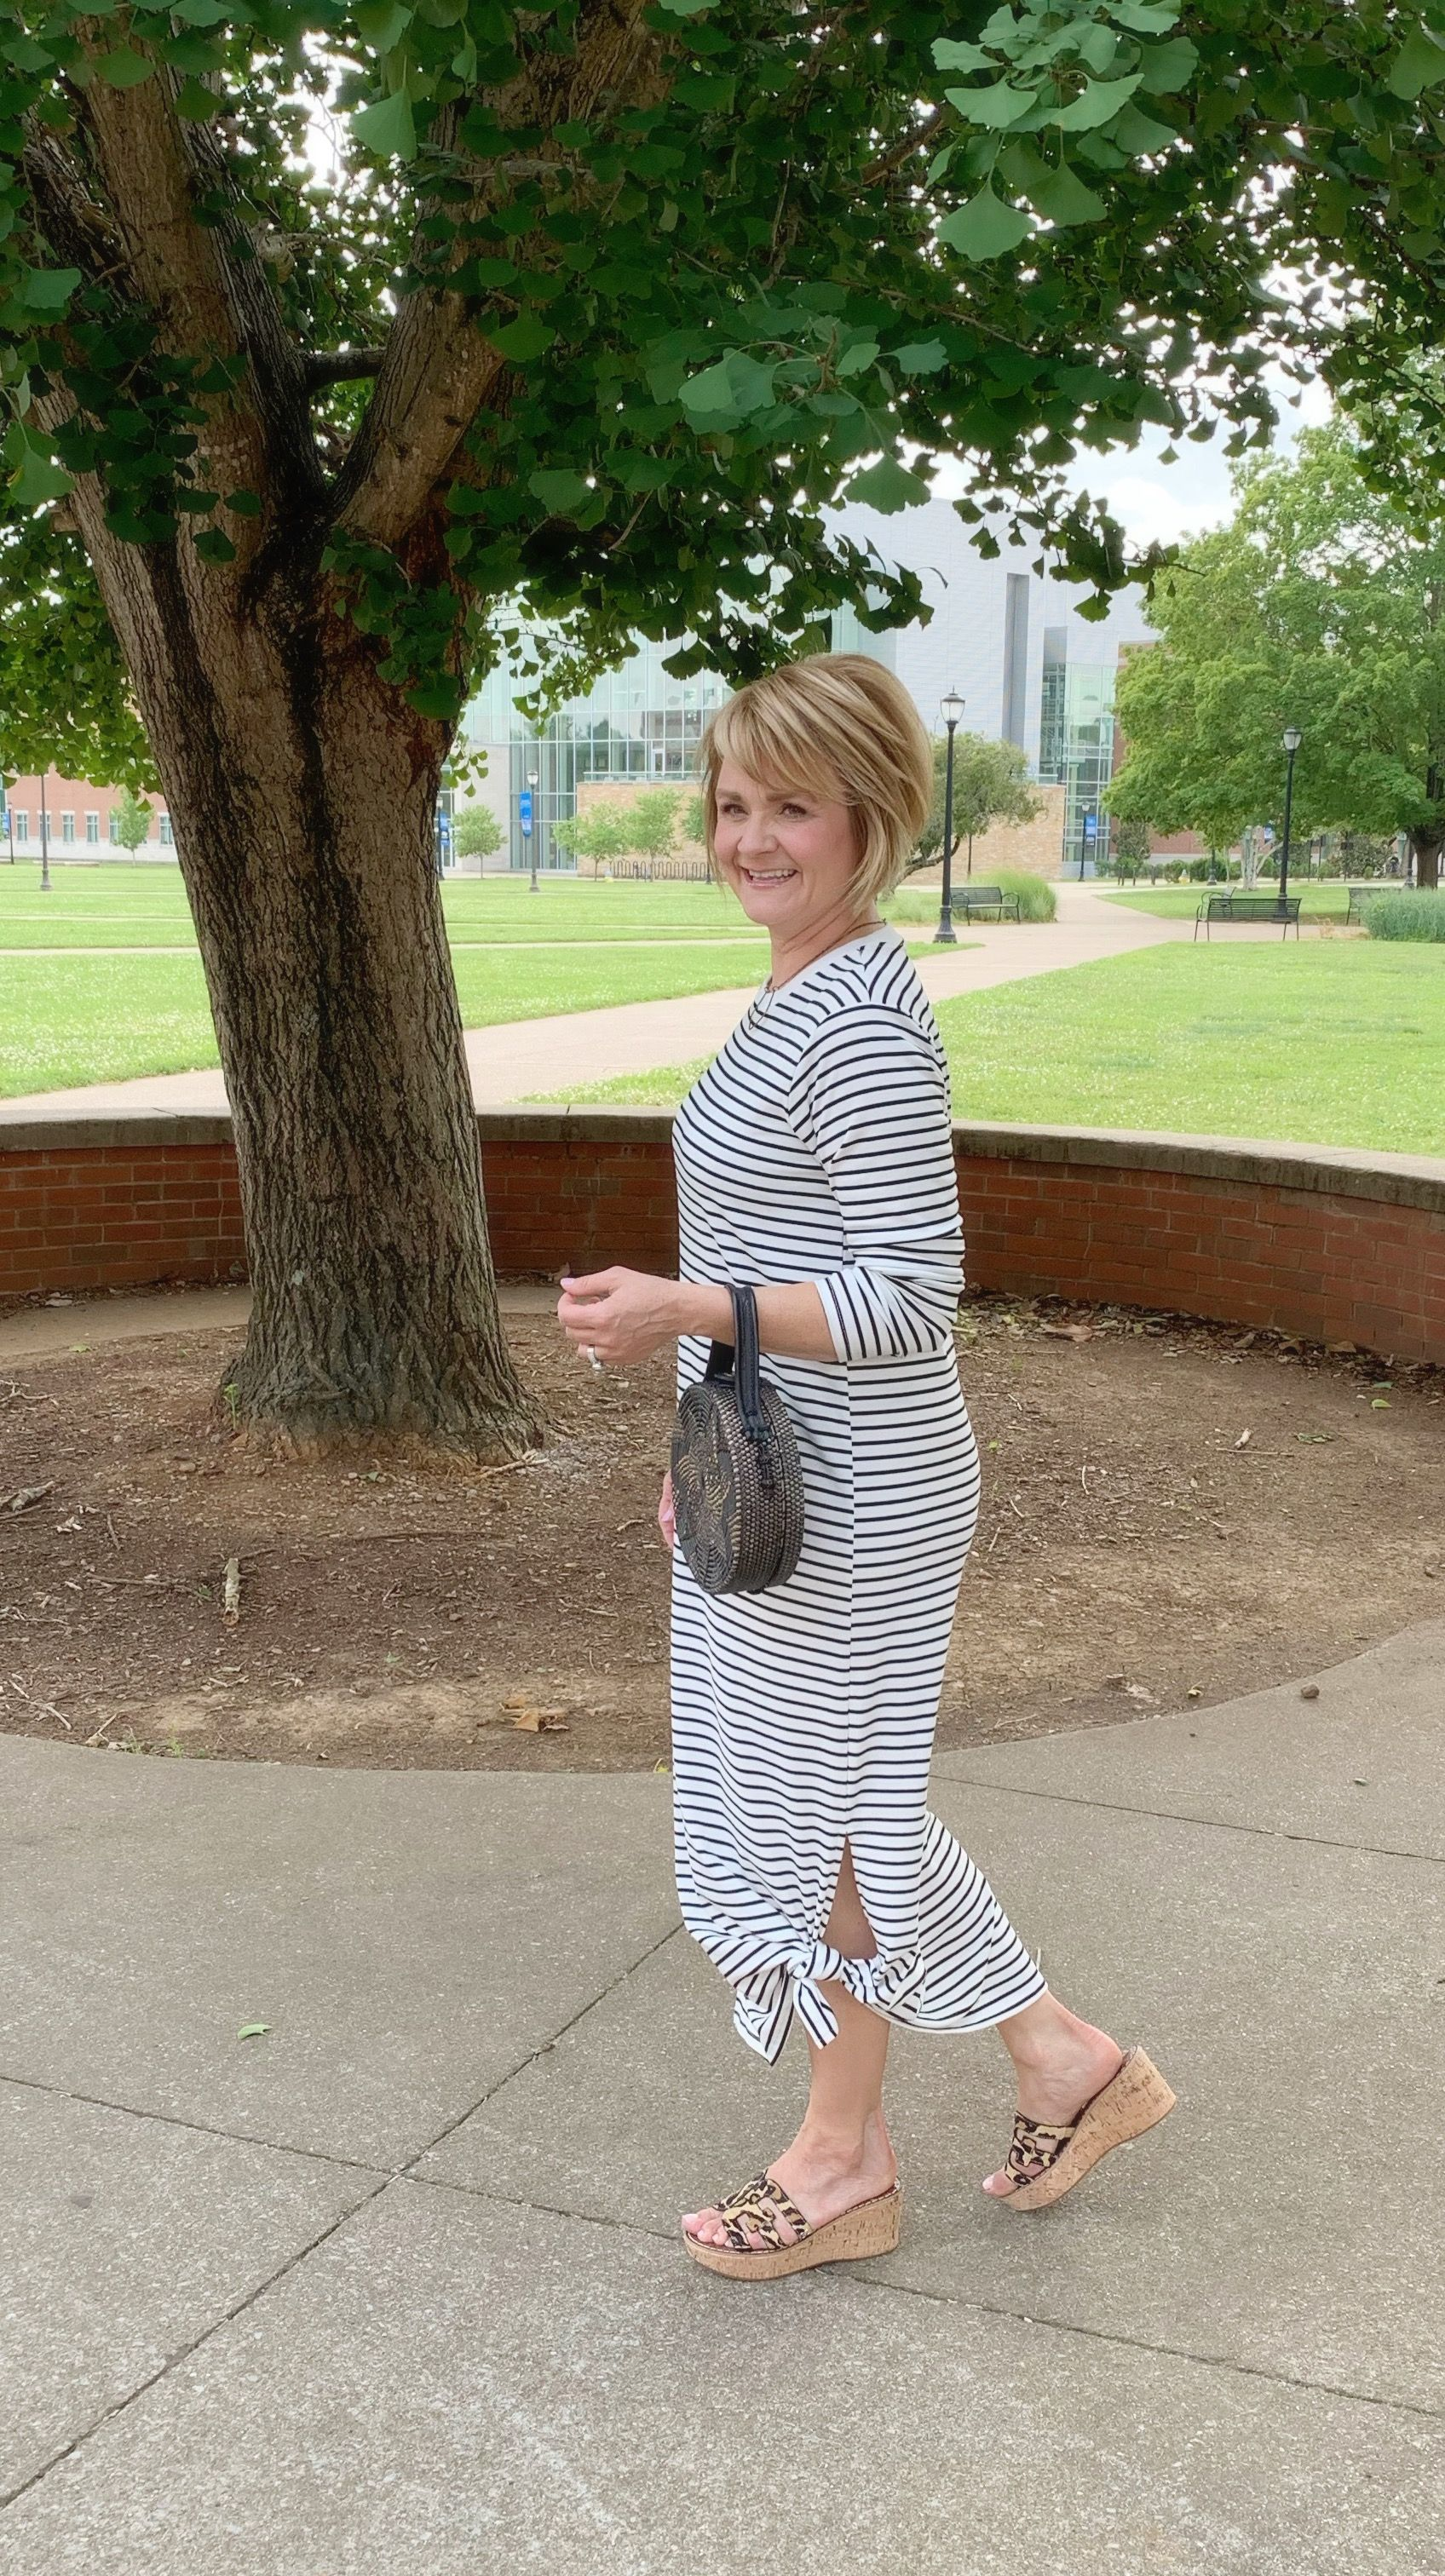 Casual Striped Dress With Sandals Summer Style For Women Over 40 Fashion For Women Over 40 Fashion Over 50 Fashion [ 3024 x 1696 Pixel ]